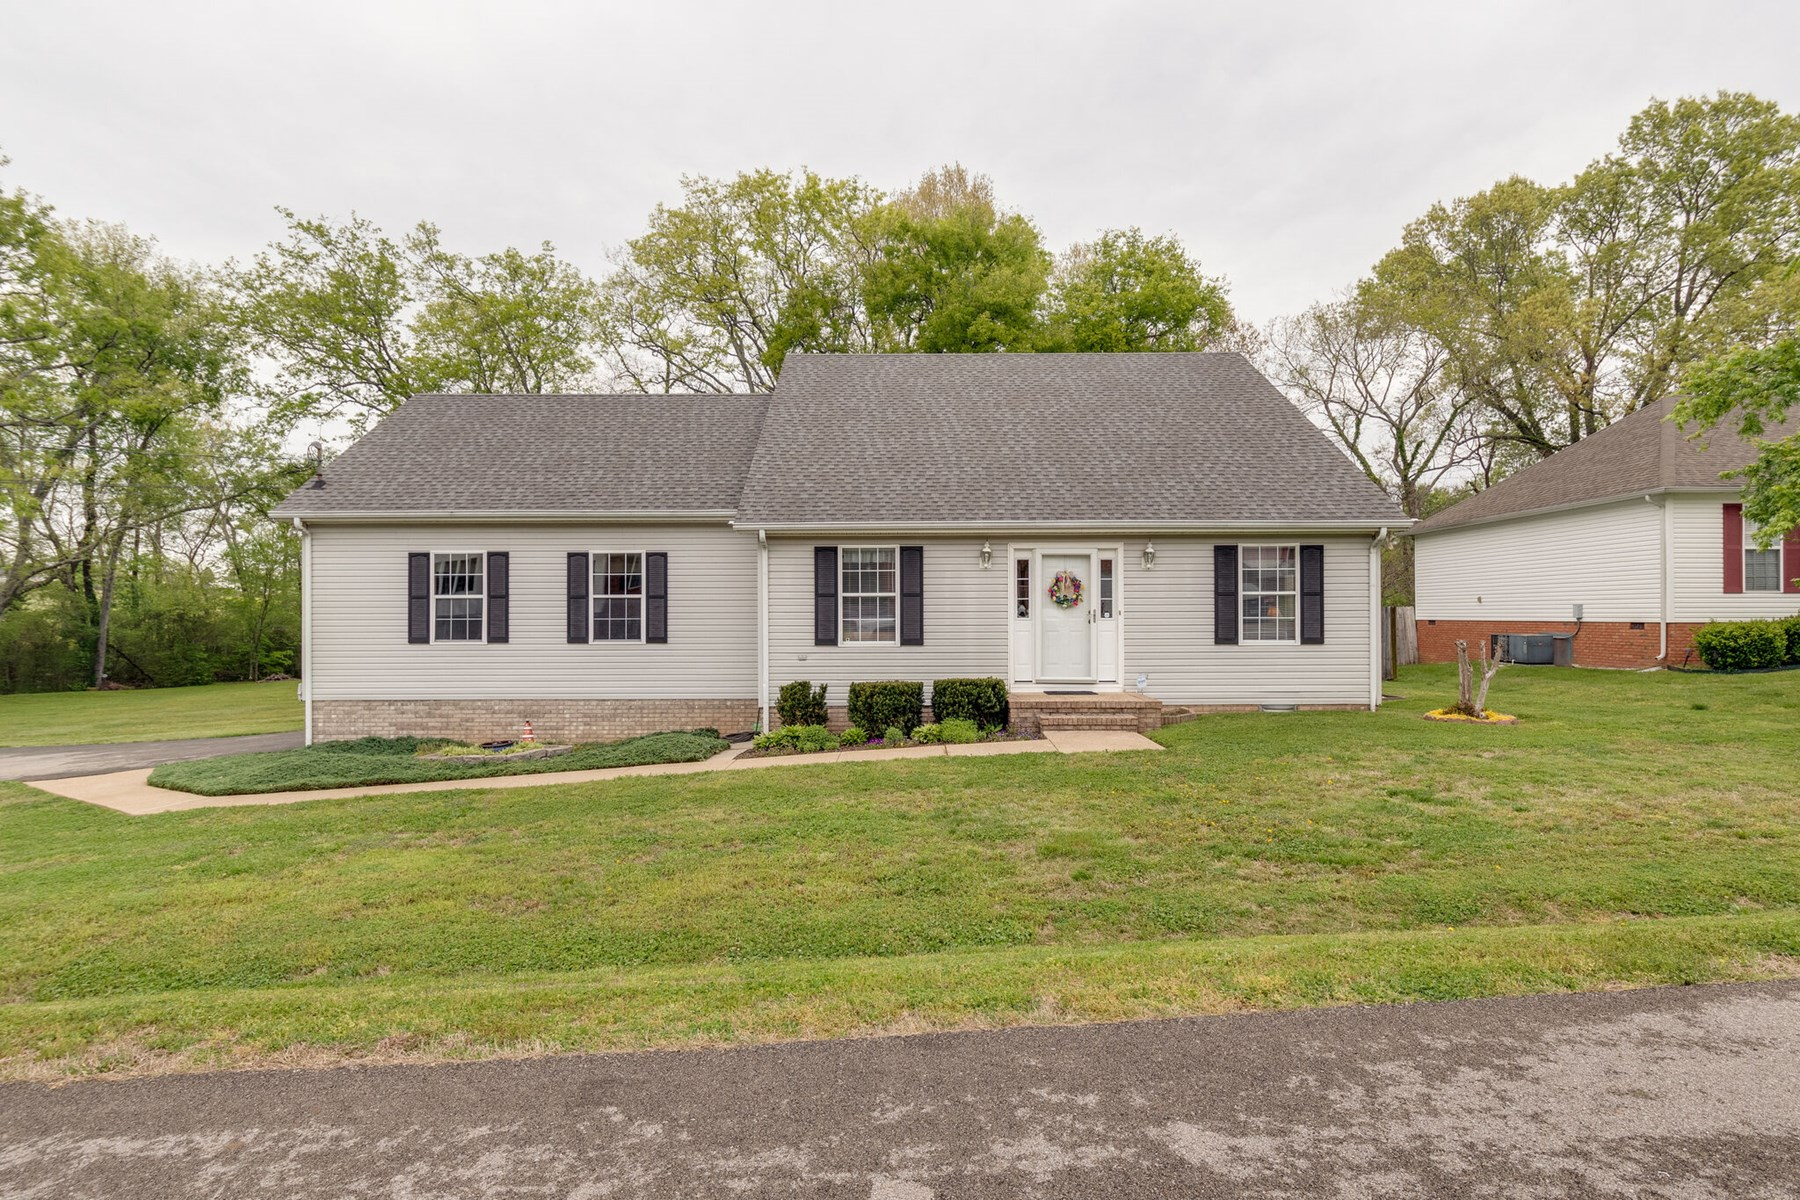 Home in Shenandoah Subdivision for Sale in Columbia TN